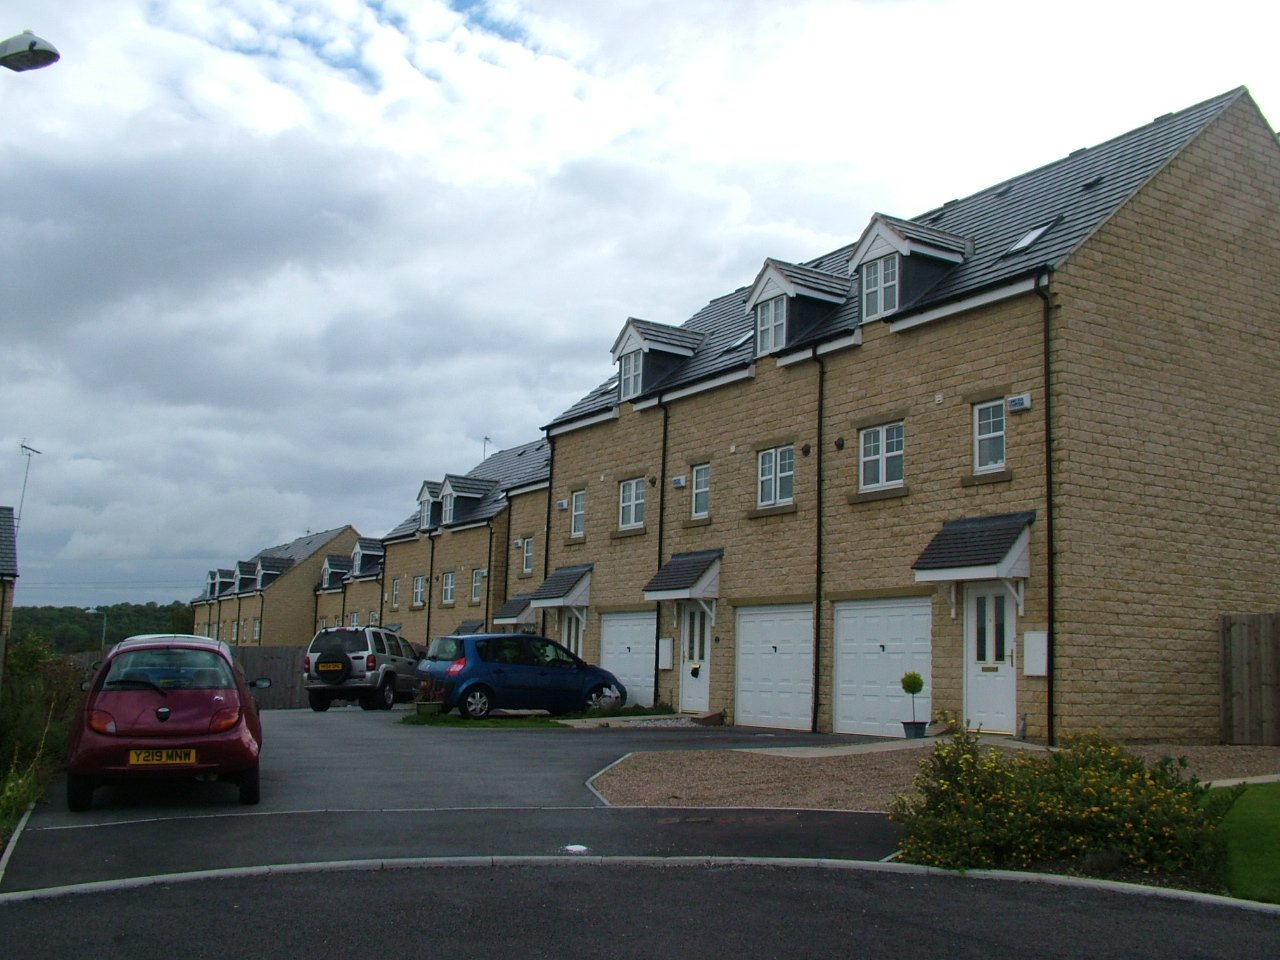 3 Storie houses at Elland for Redrow Homes